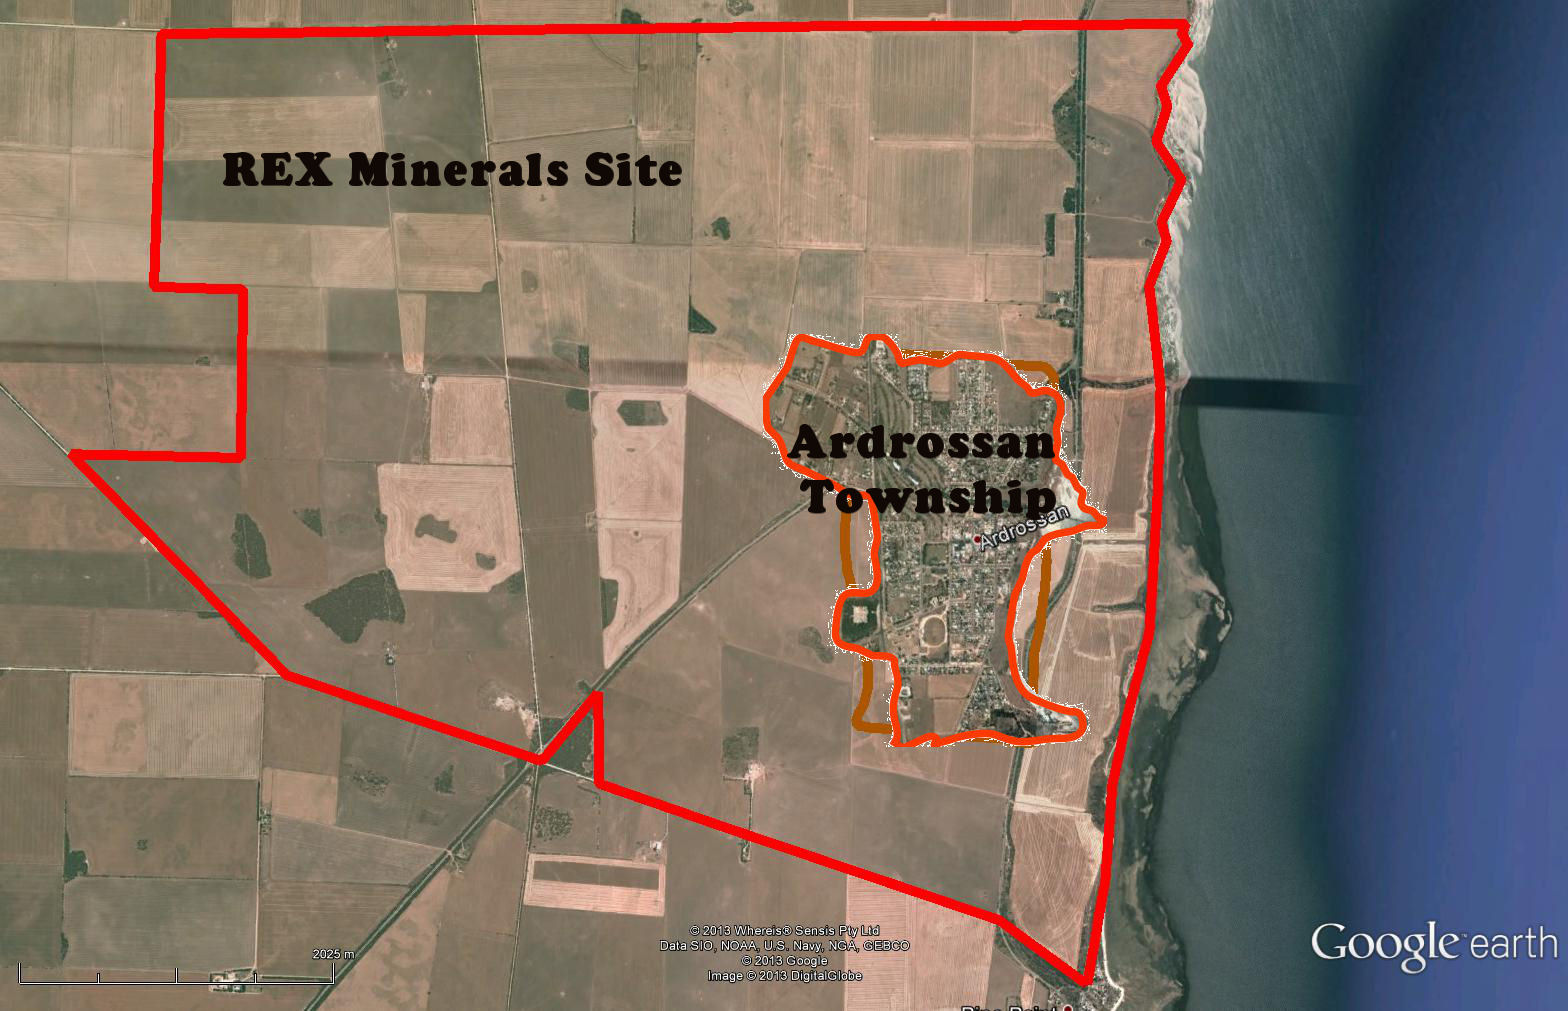 Rex Site Ardrossan township within